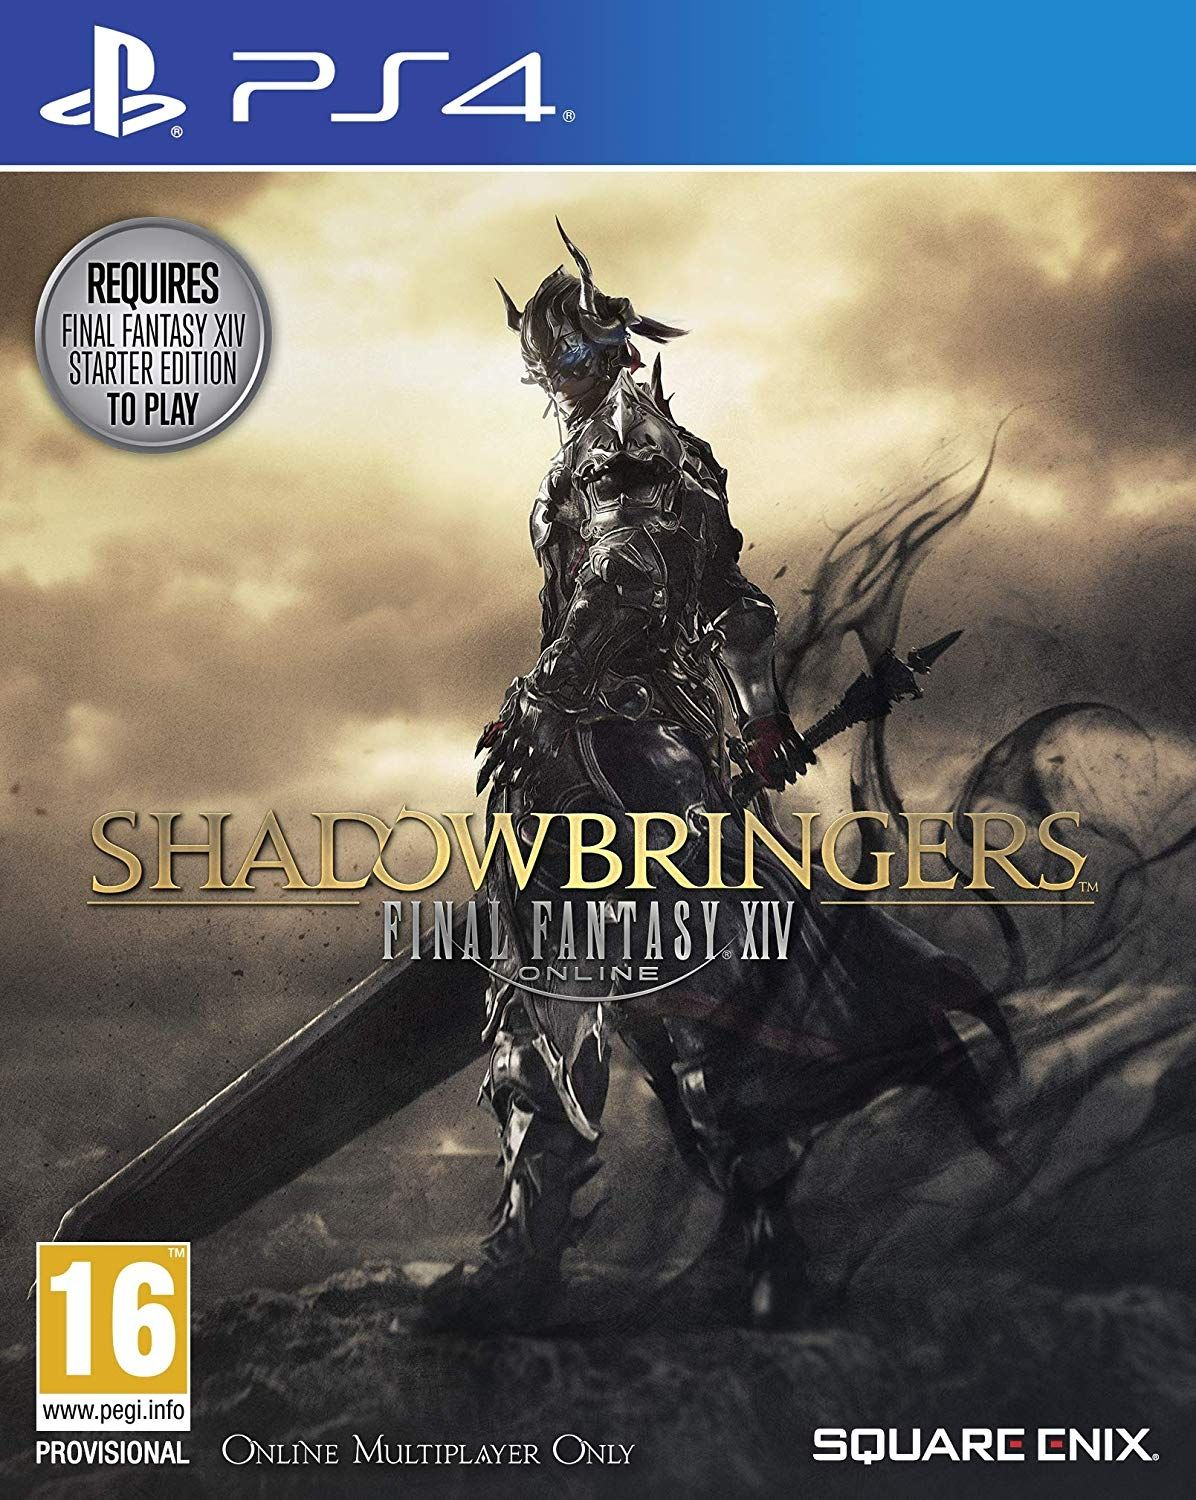 Final Fantasy XIV Shadowbringers Standard Edition (PS4) - 1